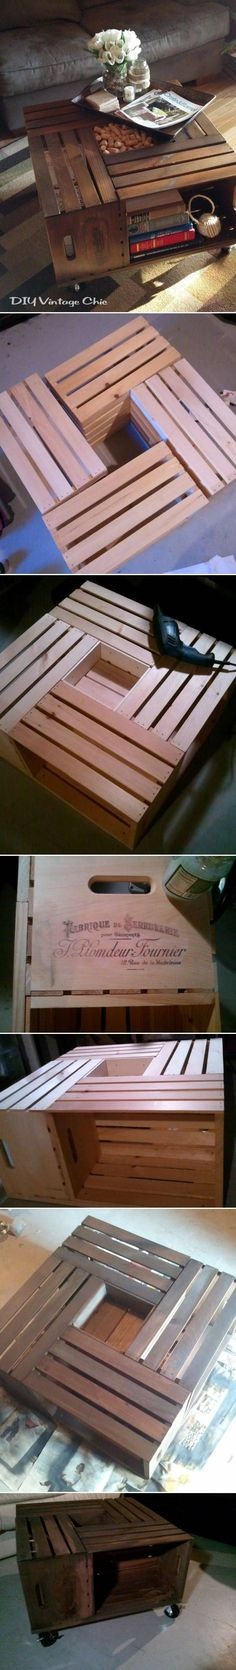 DIY Wine Crate Table